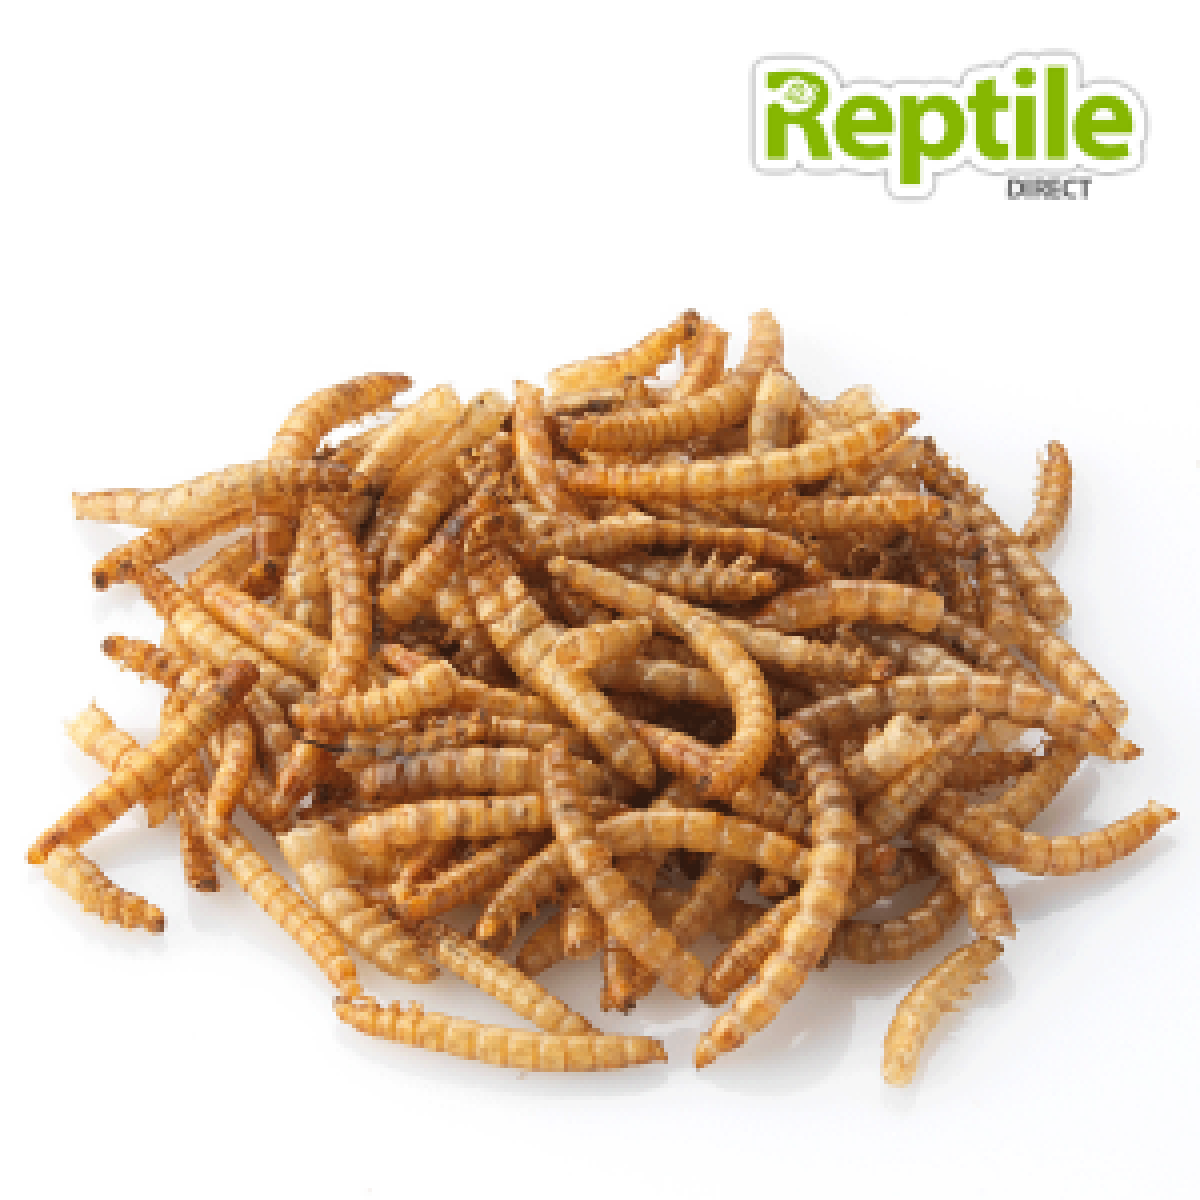 20-30mm Live Meal Worms